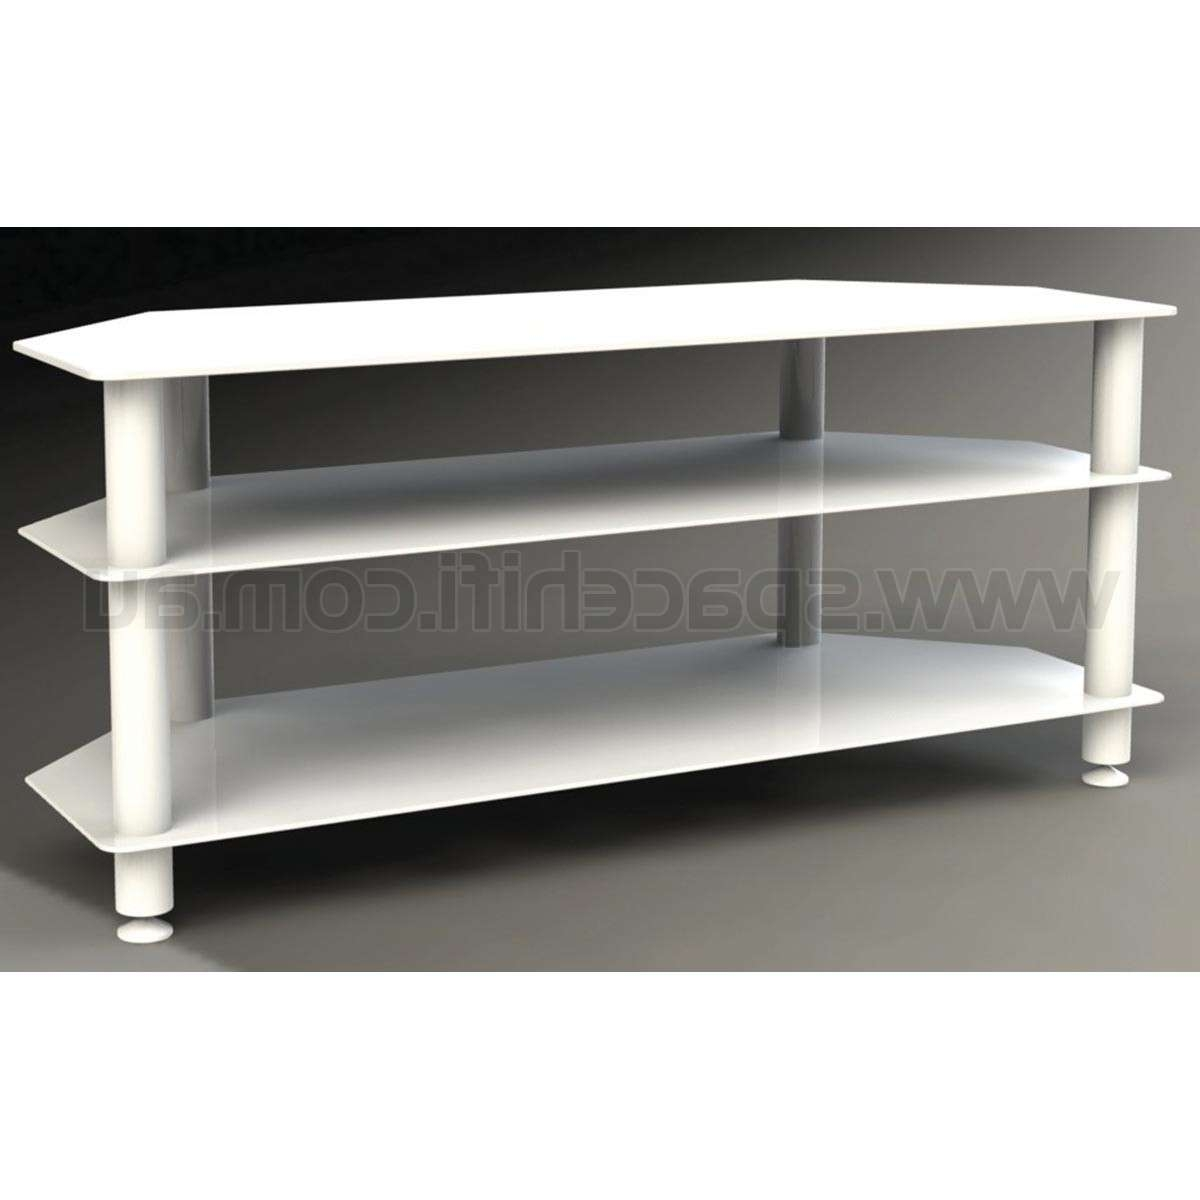 Tauris Ace 1200mm 3 Shelf White Glass Tv Unit Stand | Space Hi Fi Within White Glass Tv Stands (View 6 of 15)